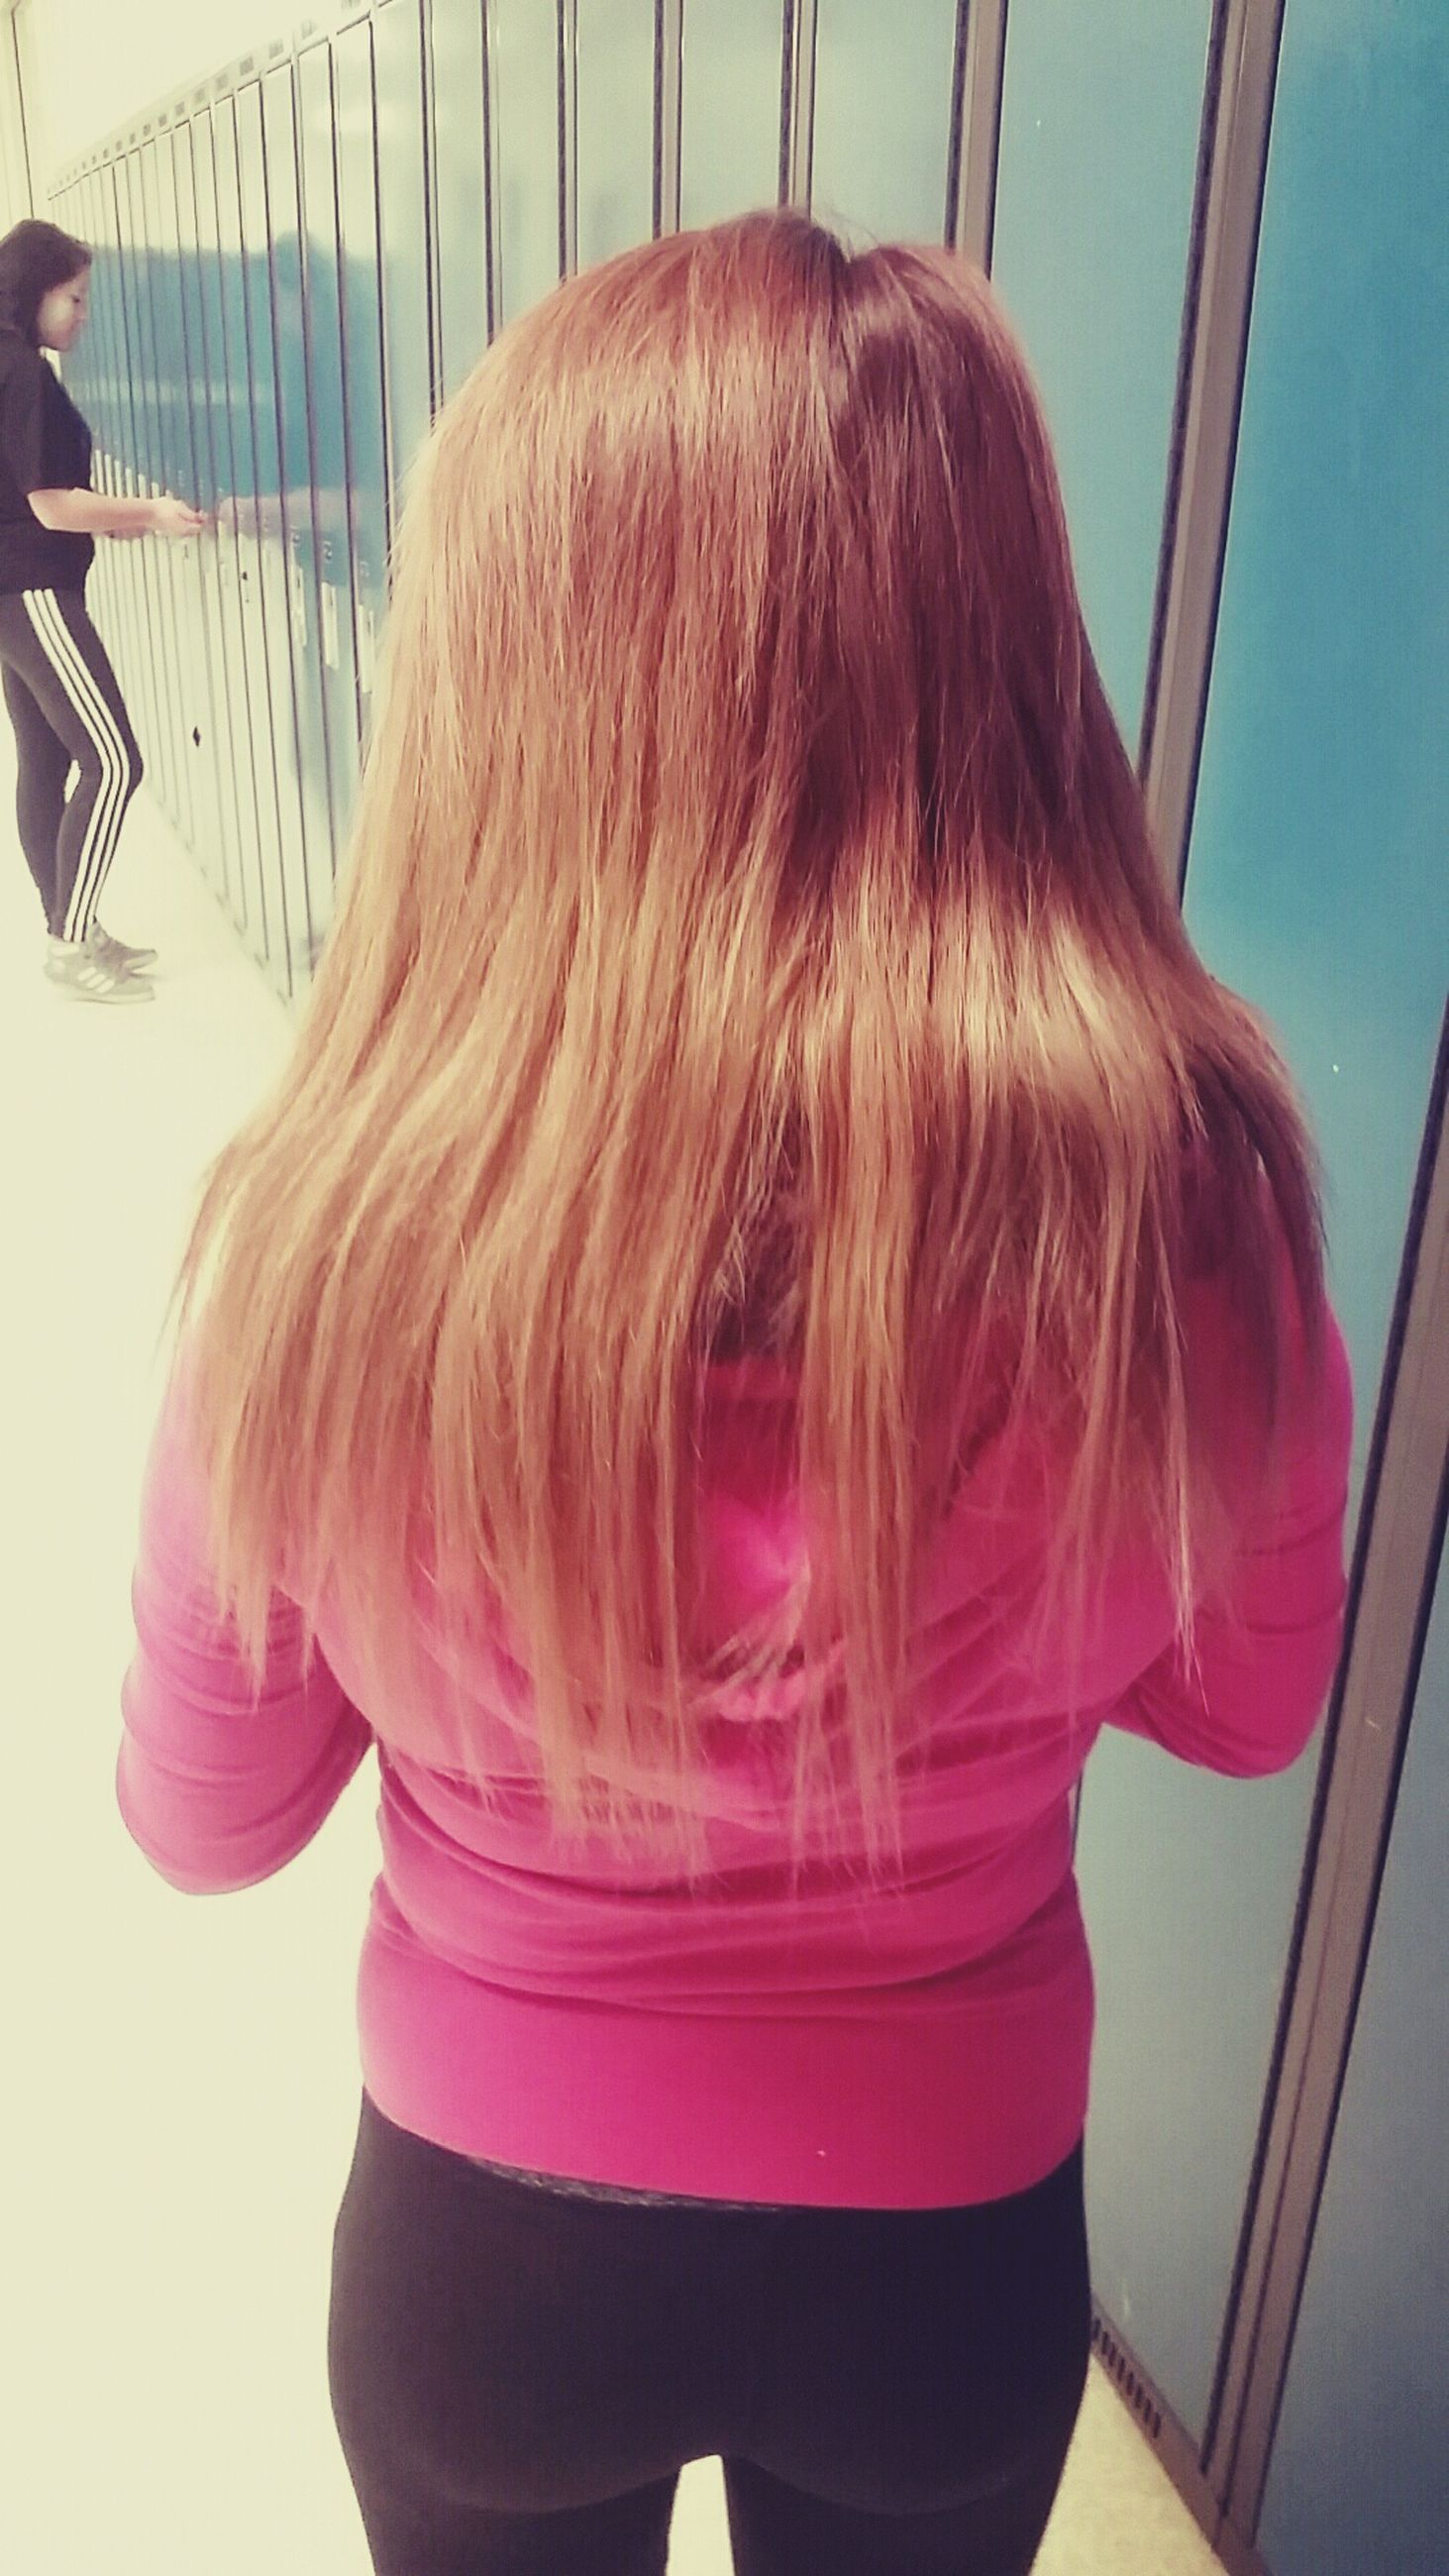 lifestyles, long hair, leisure activity, young women, casual clothing, rear view, person, blond hair, standing, young adult, headshot, waist up, brown hair, girls, indoors, three quarter length, side view